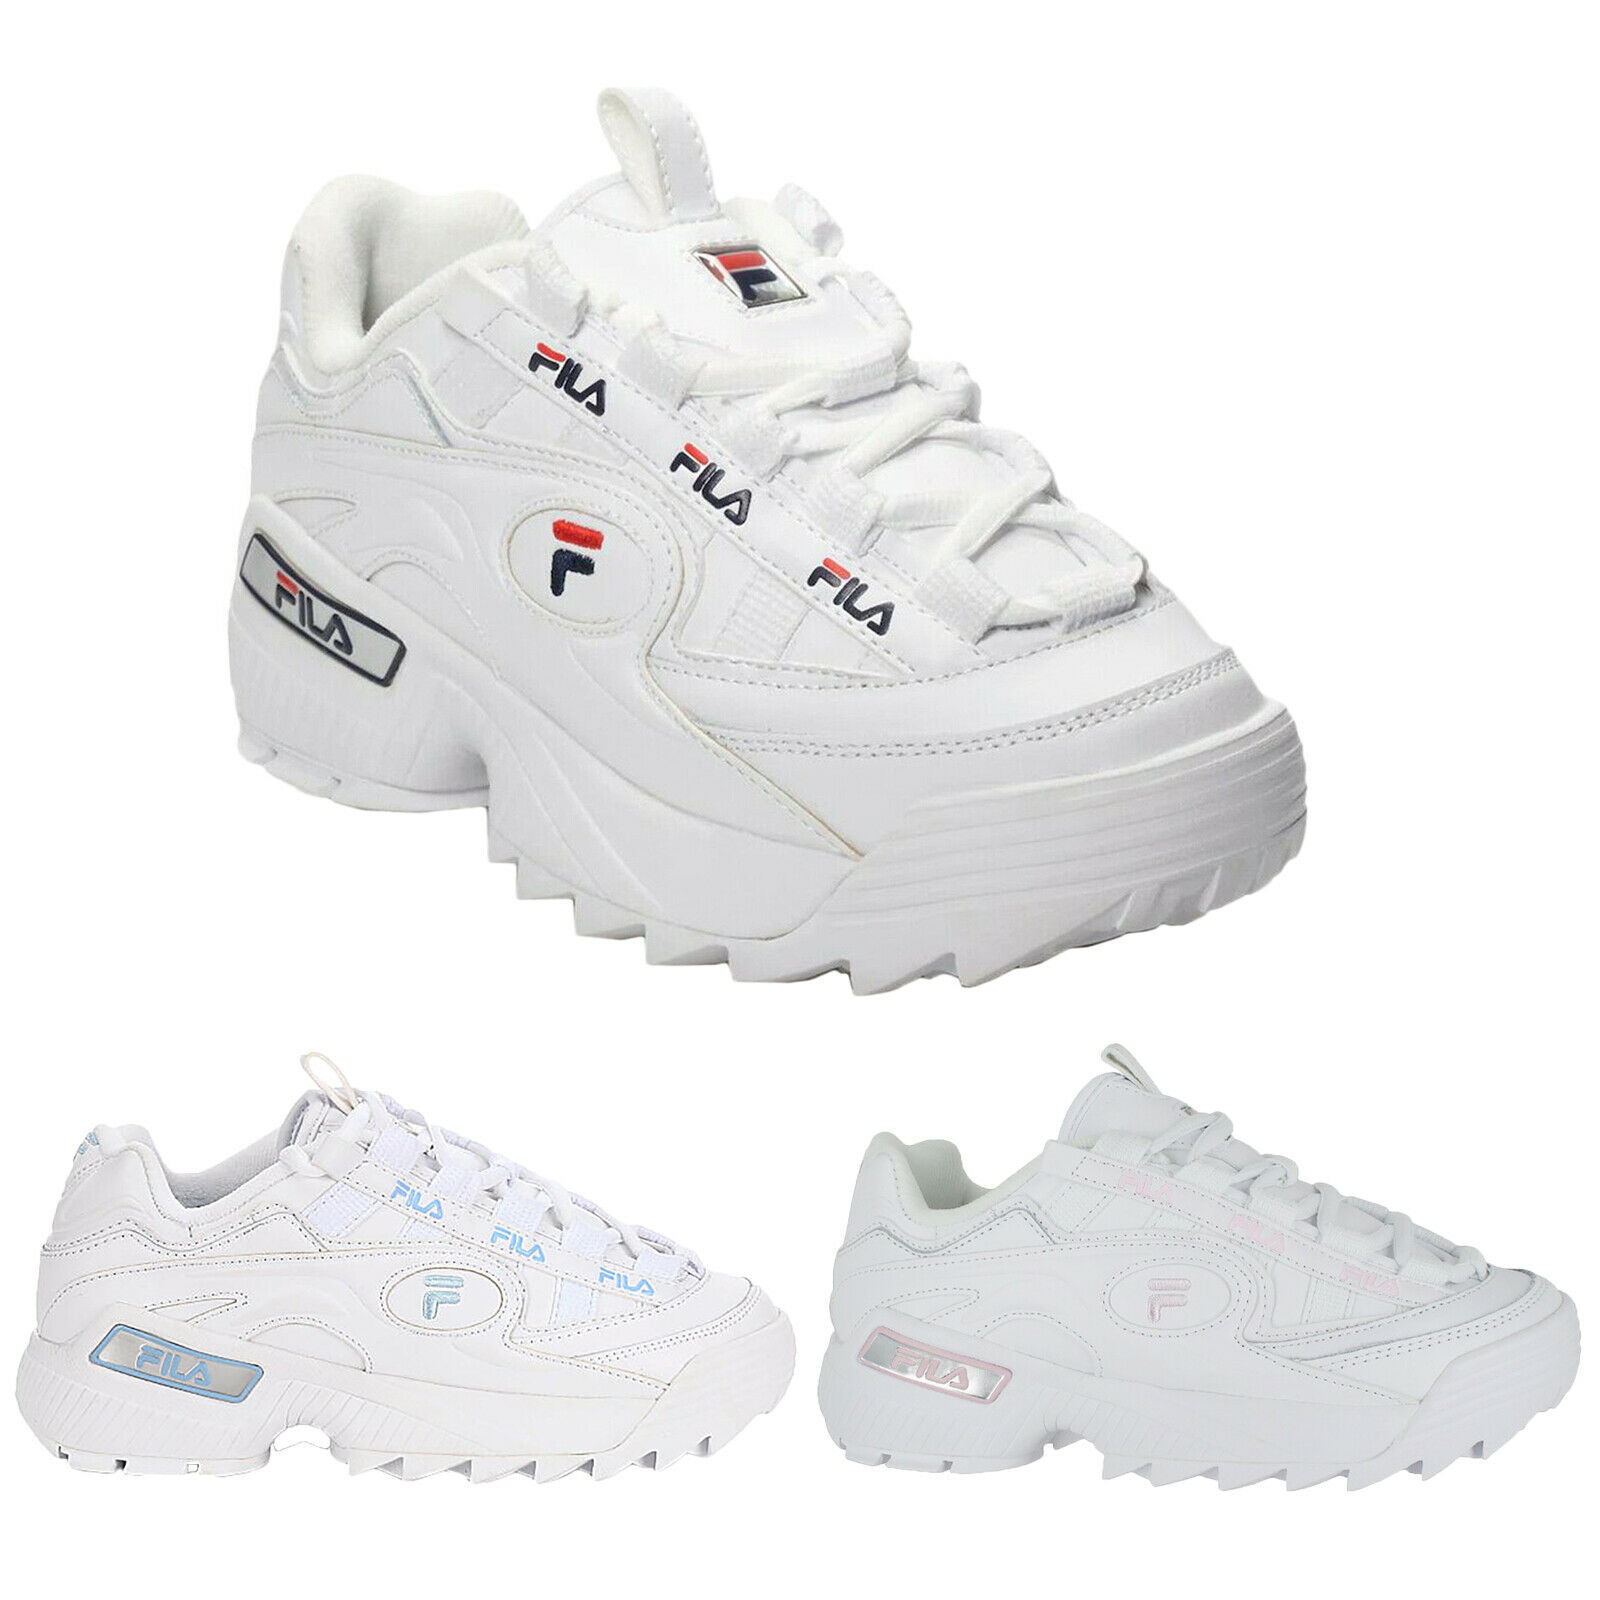 Fila D-Formation Synthetic Leather New Lace-Up Athletic Damen Trainer